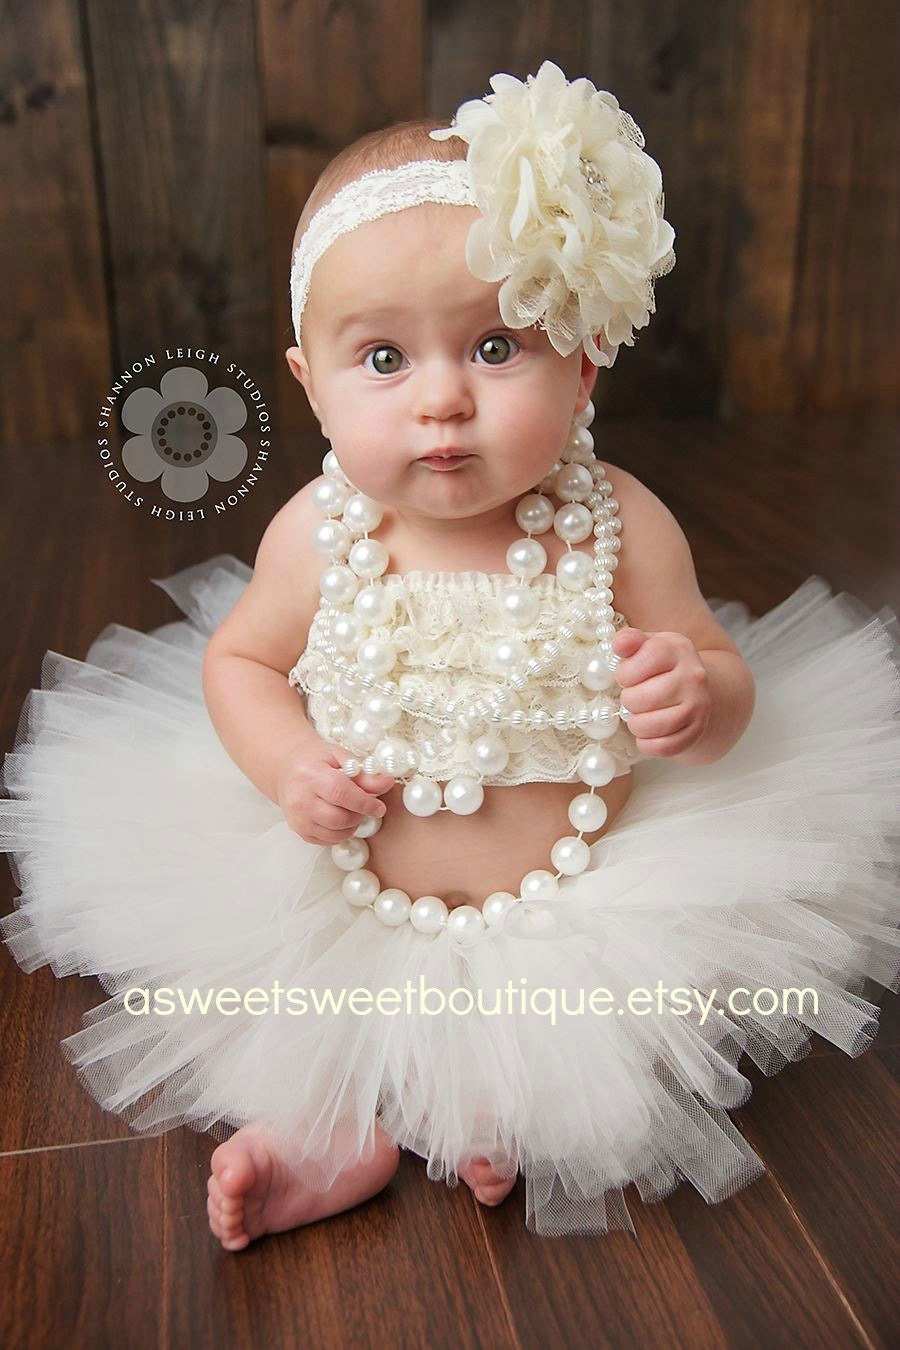 Find great deals on eBay for baby girl tutu. Shop with confidence.